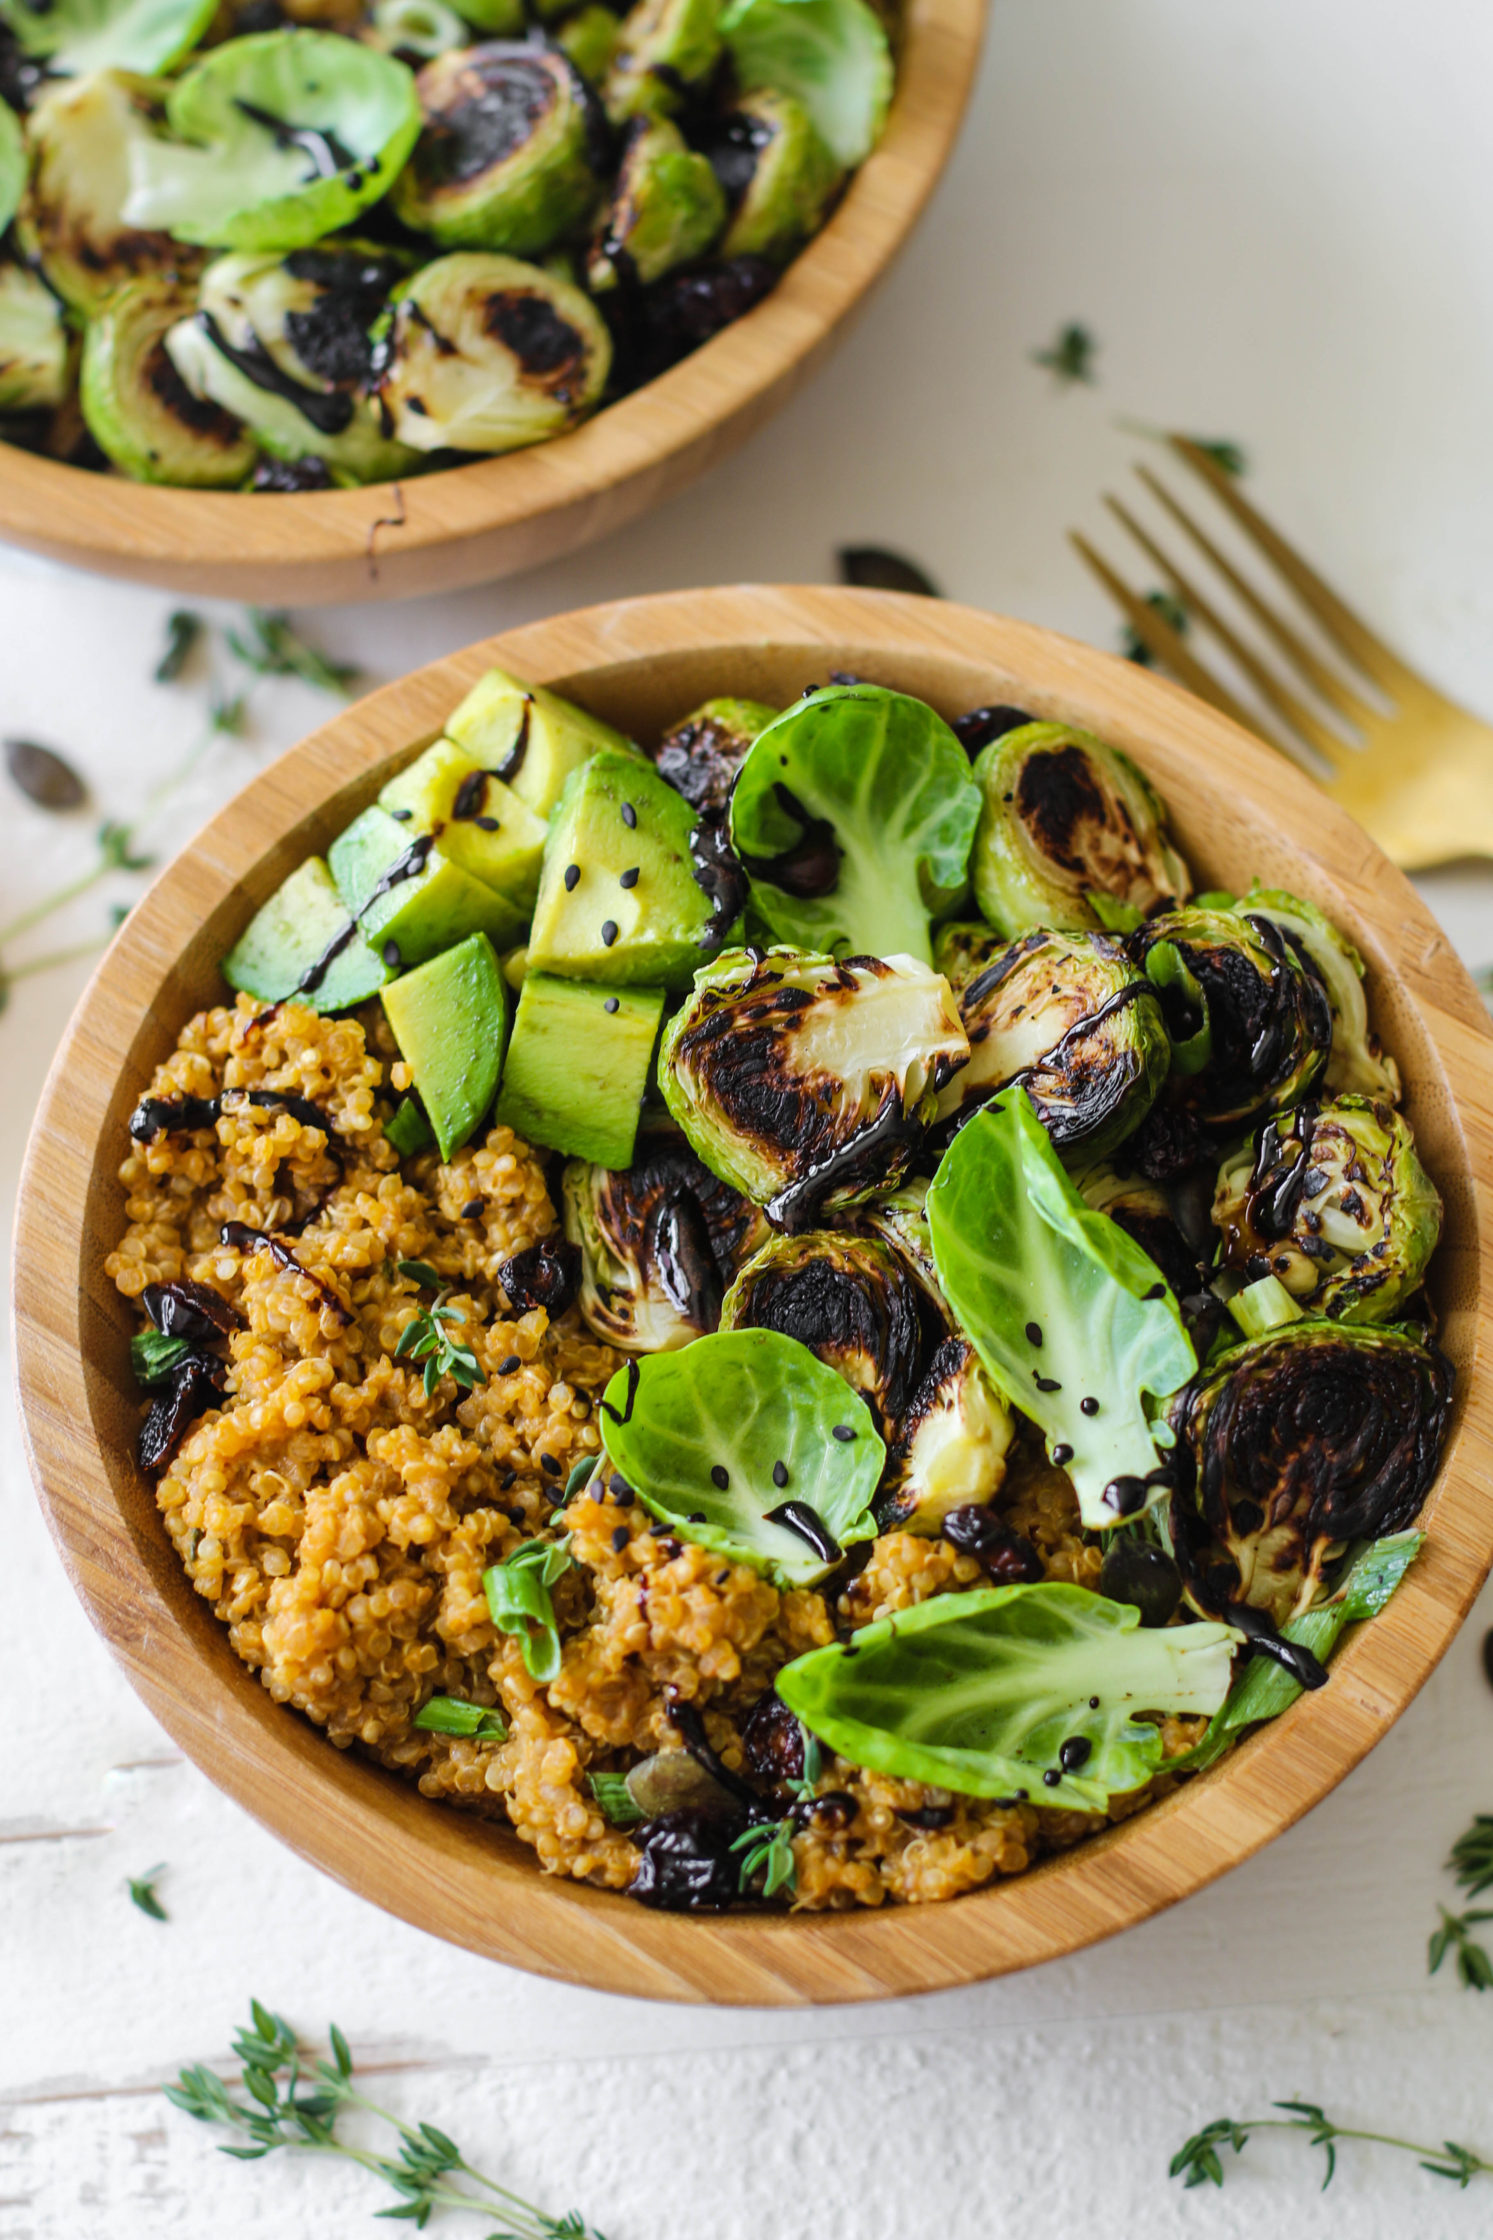 Pumpkin Quinoa Bowls with Brussel Sprouts and Easy Balsamic Reduction